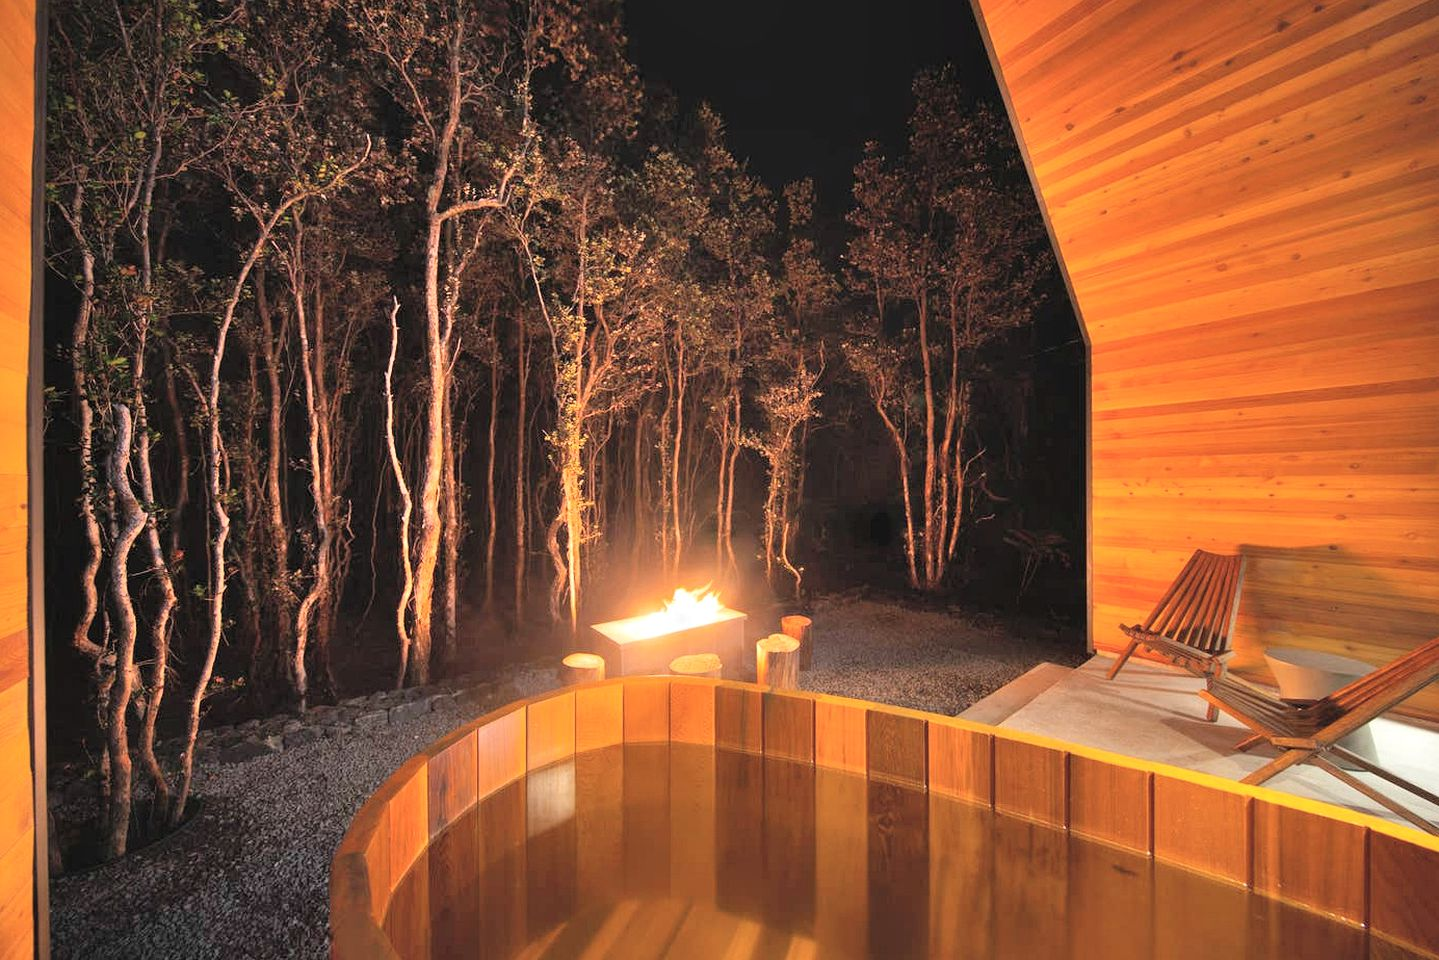 The cabin is surrounded by lush vegetation and by a forest which provide beautiful views